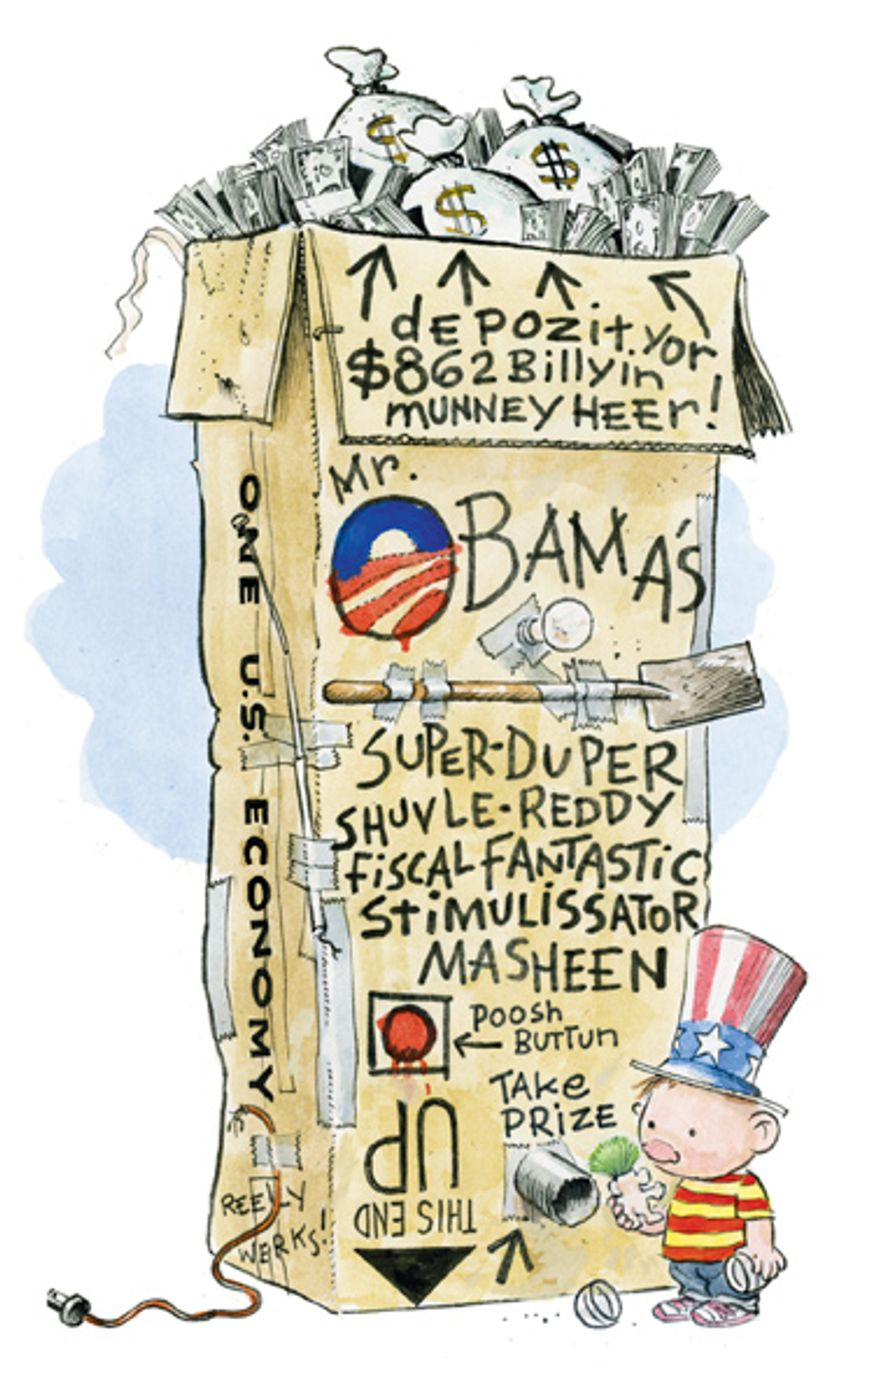 The Stimulus Box by Alexander Hunter for The Washington Times